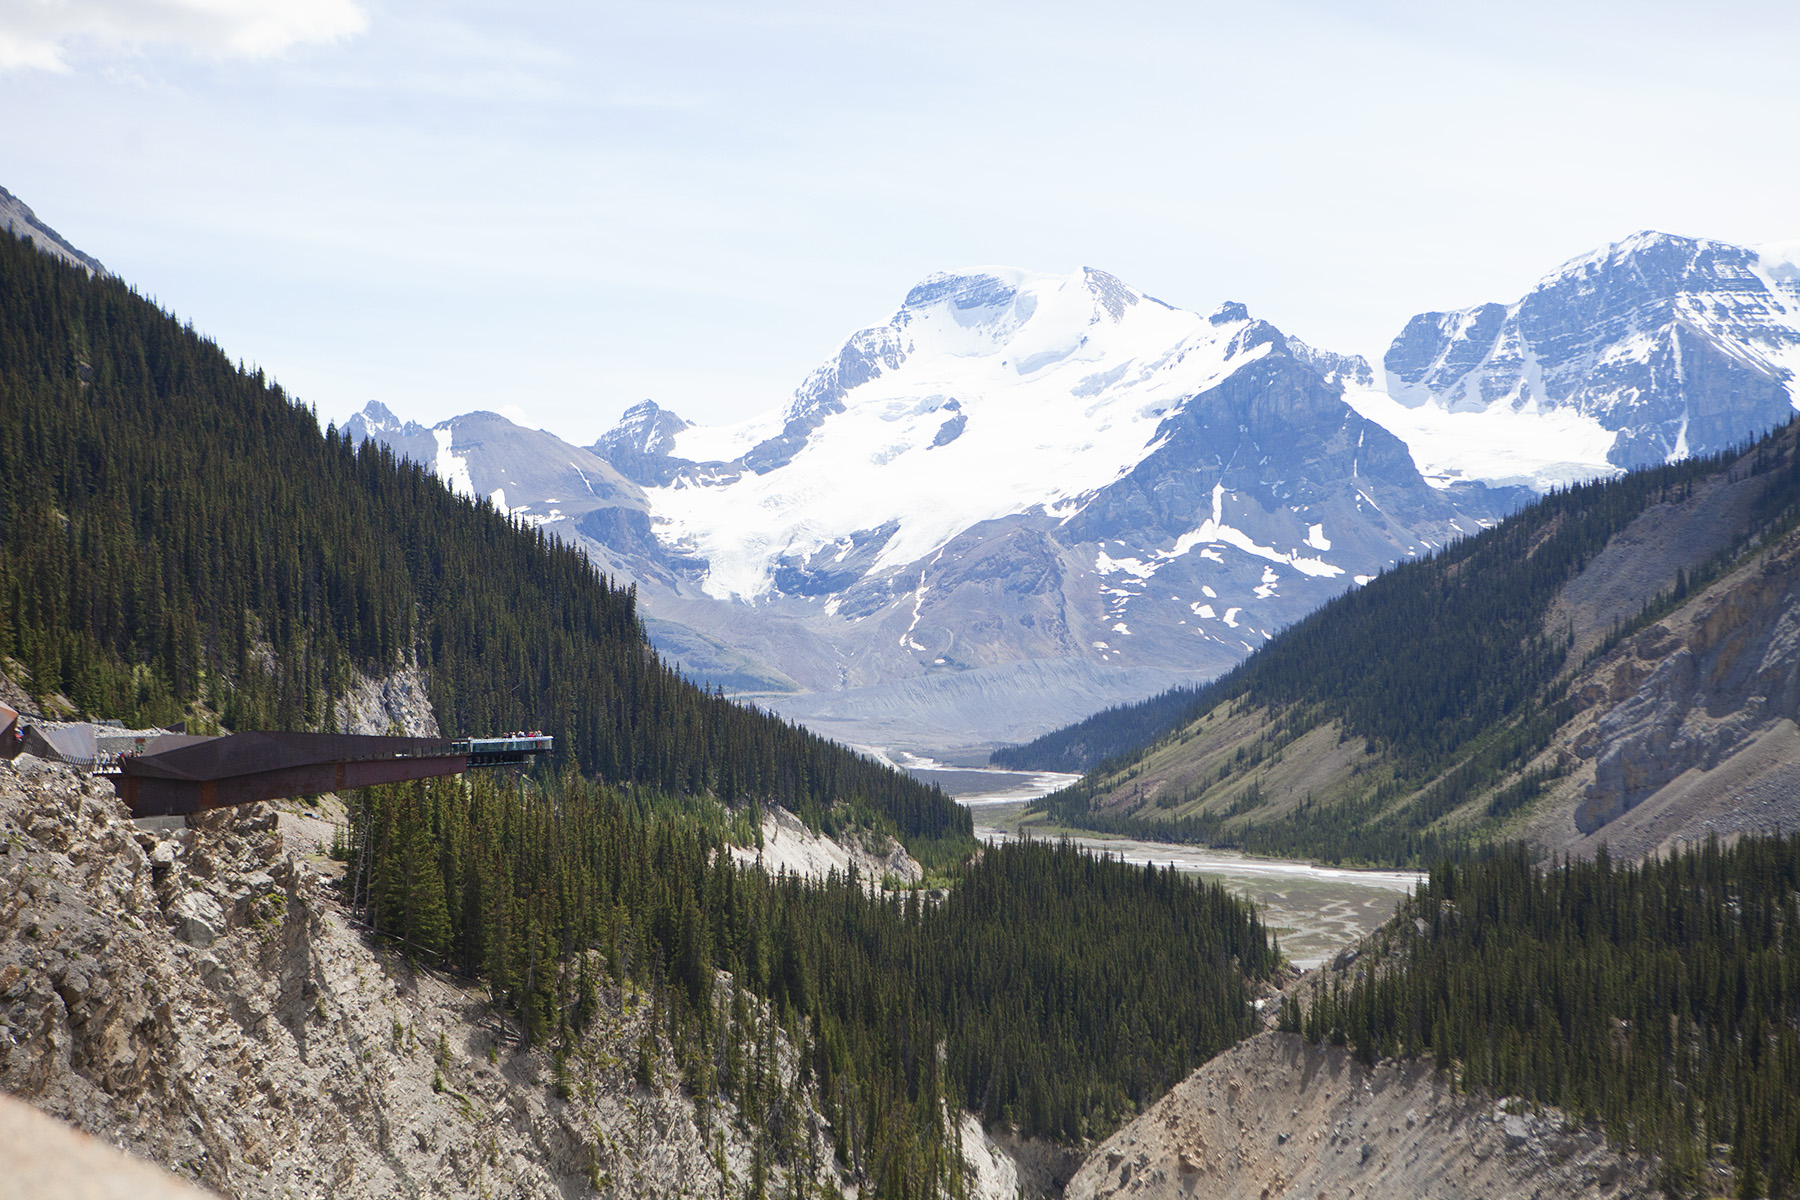 Glacier Skywalk - see the Columbia Icefields and surrounding Rocky Mountains from a unique perspective!